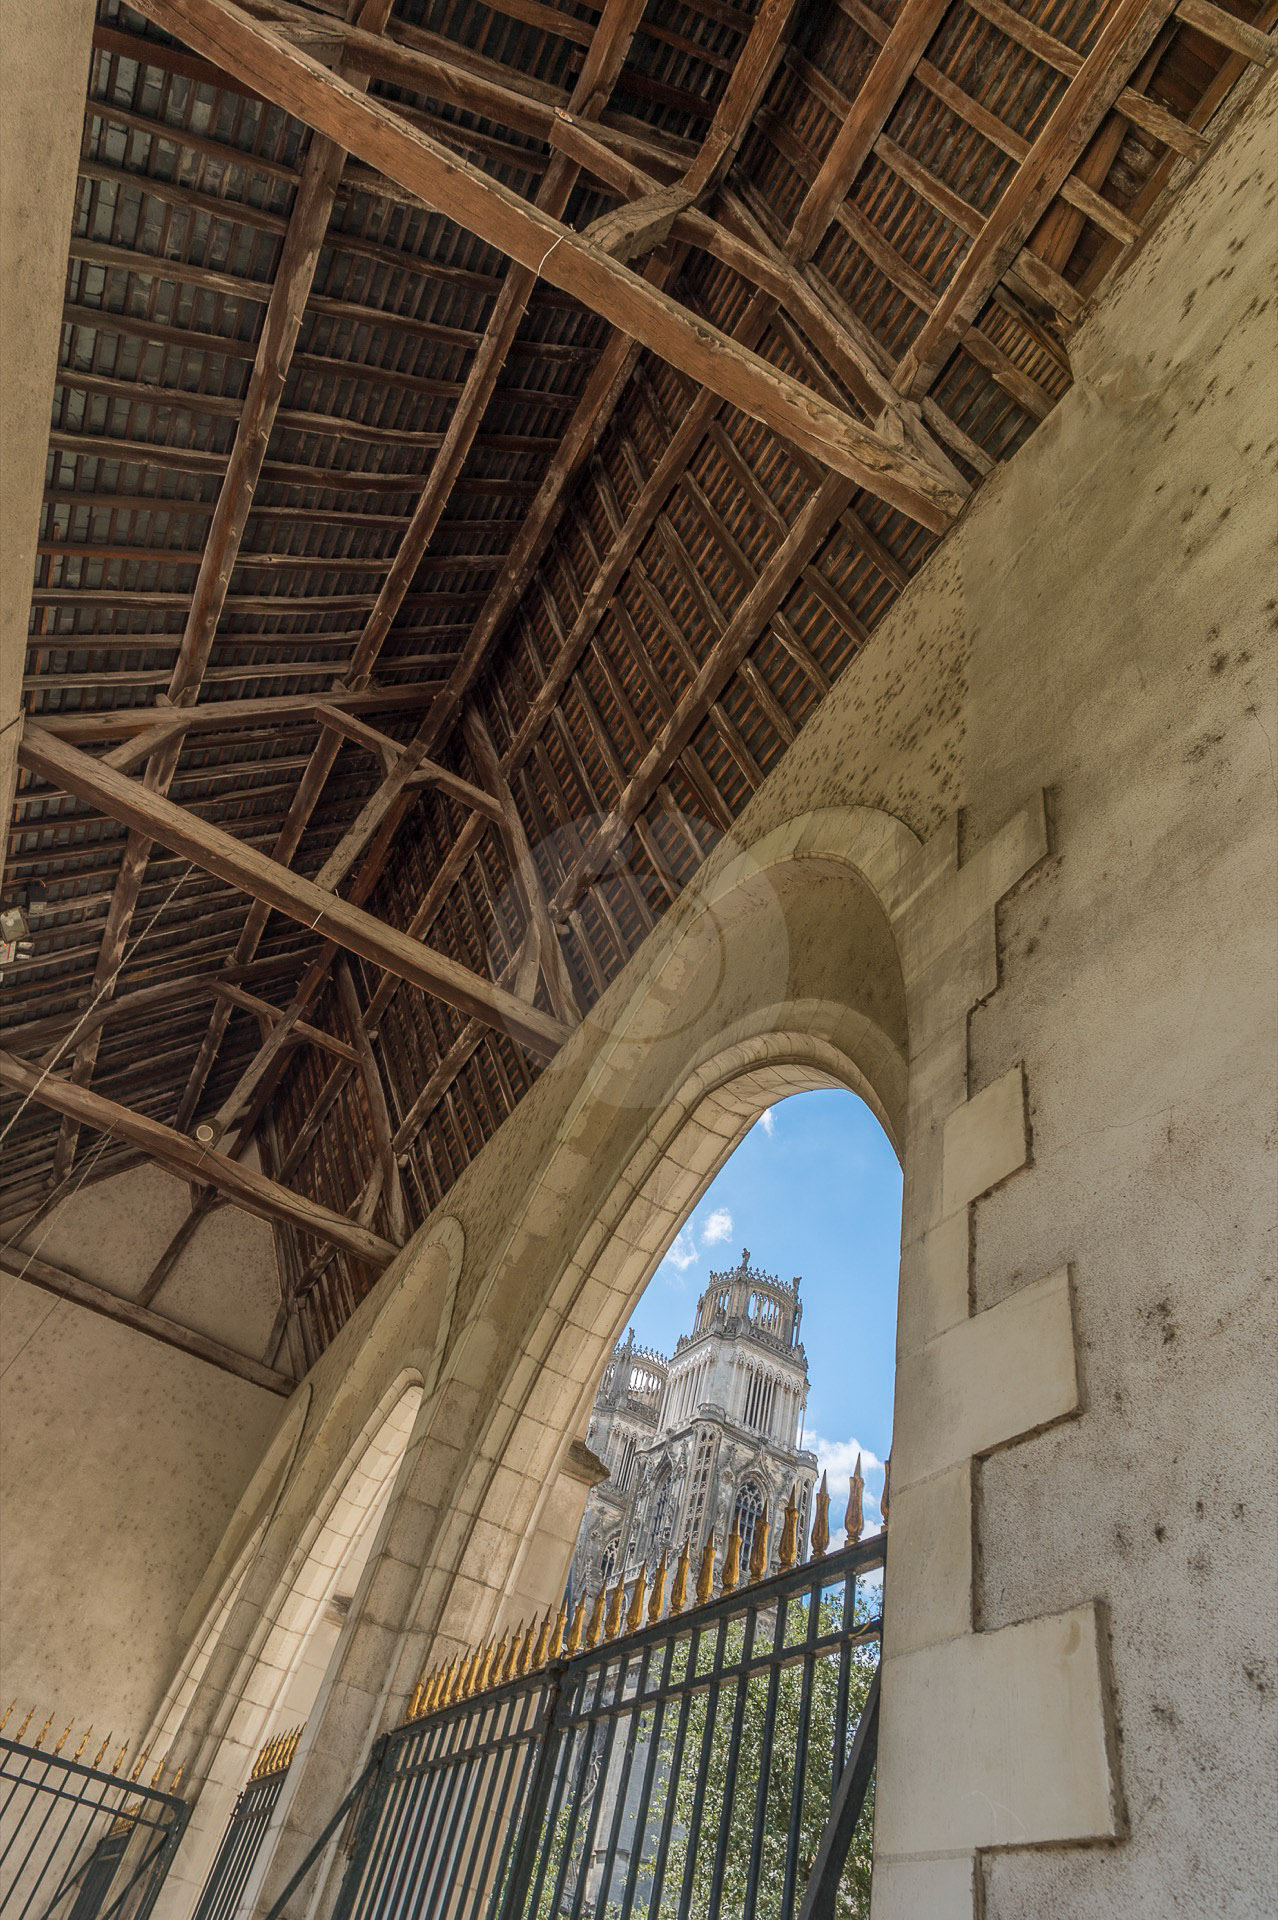 028-balade-a-orleans-aout-2016-hdr-1920-px